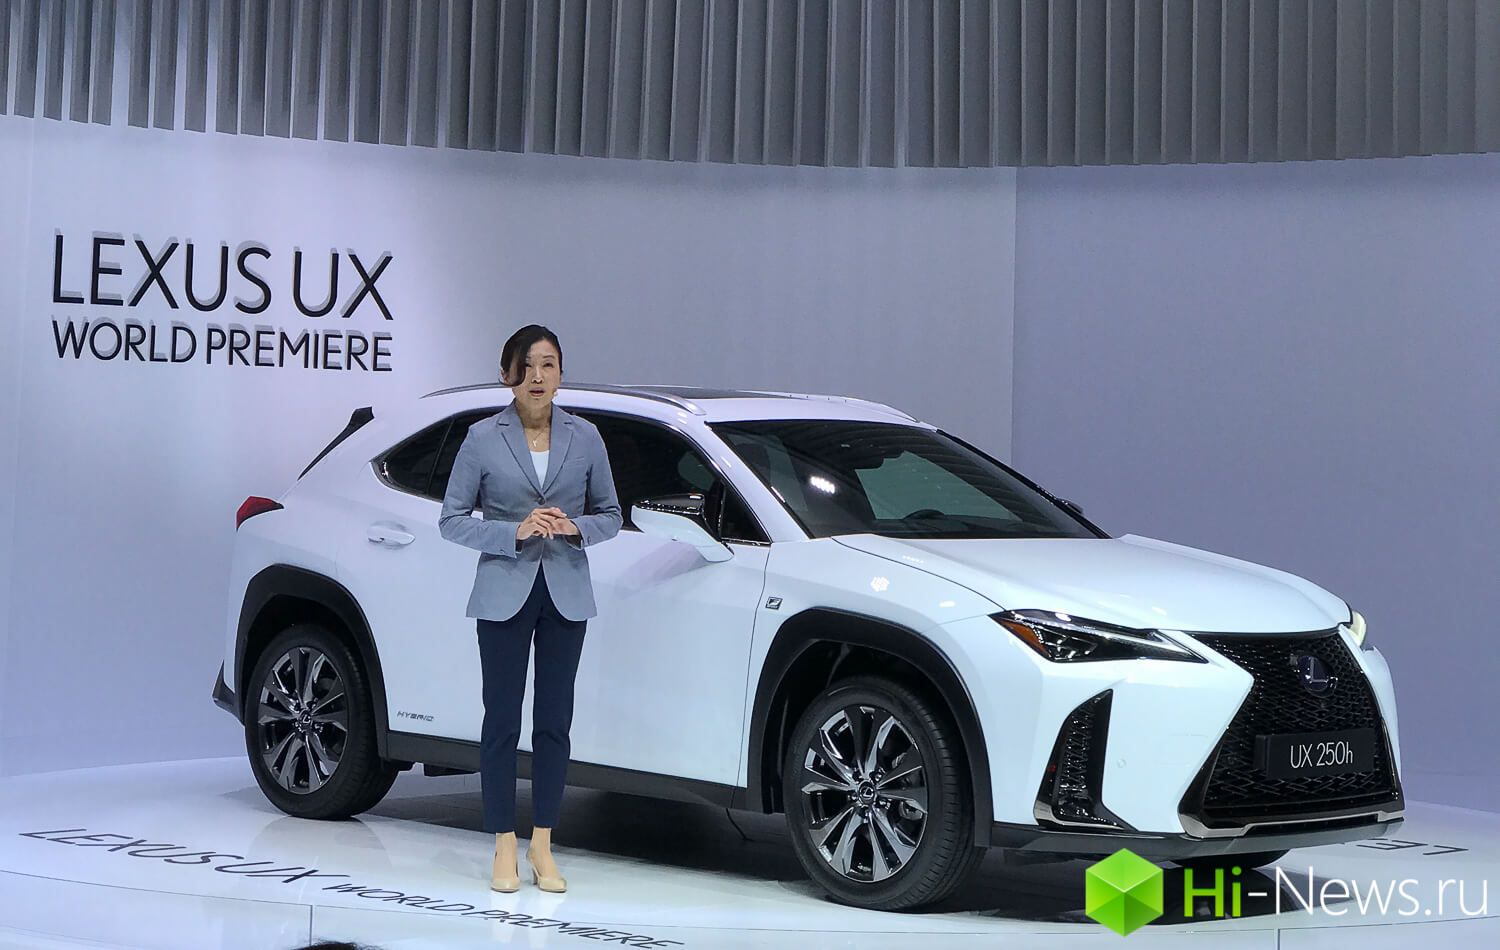 Your Self Driving Car We Will Show In 2020 An Interview With The Chief Engineer Of The Lexus Ux Lexus Self Driving Hybrid Car